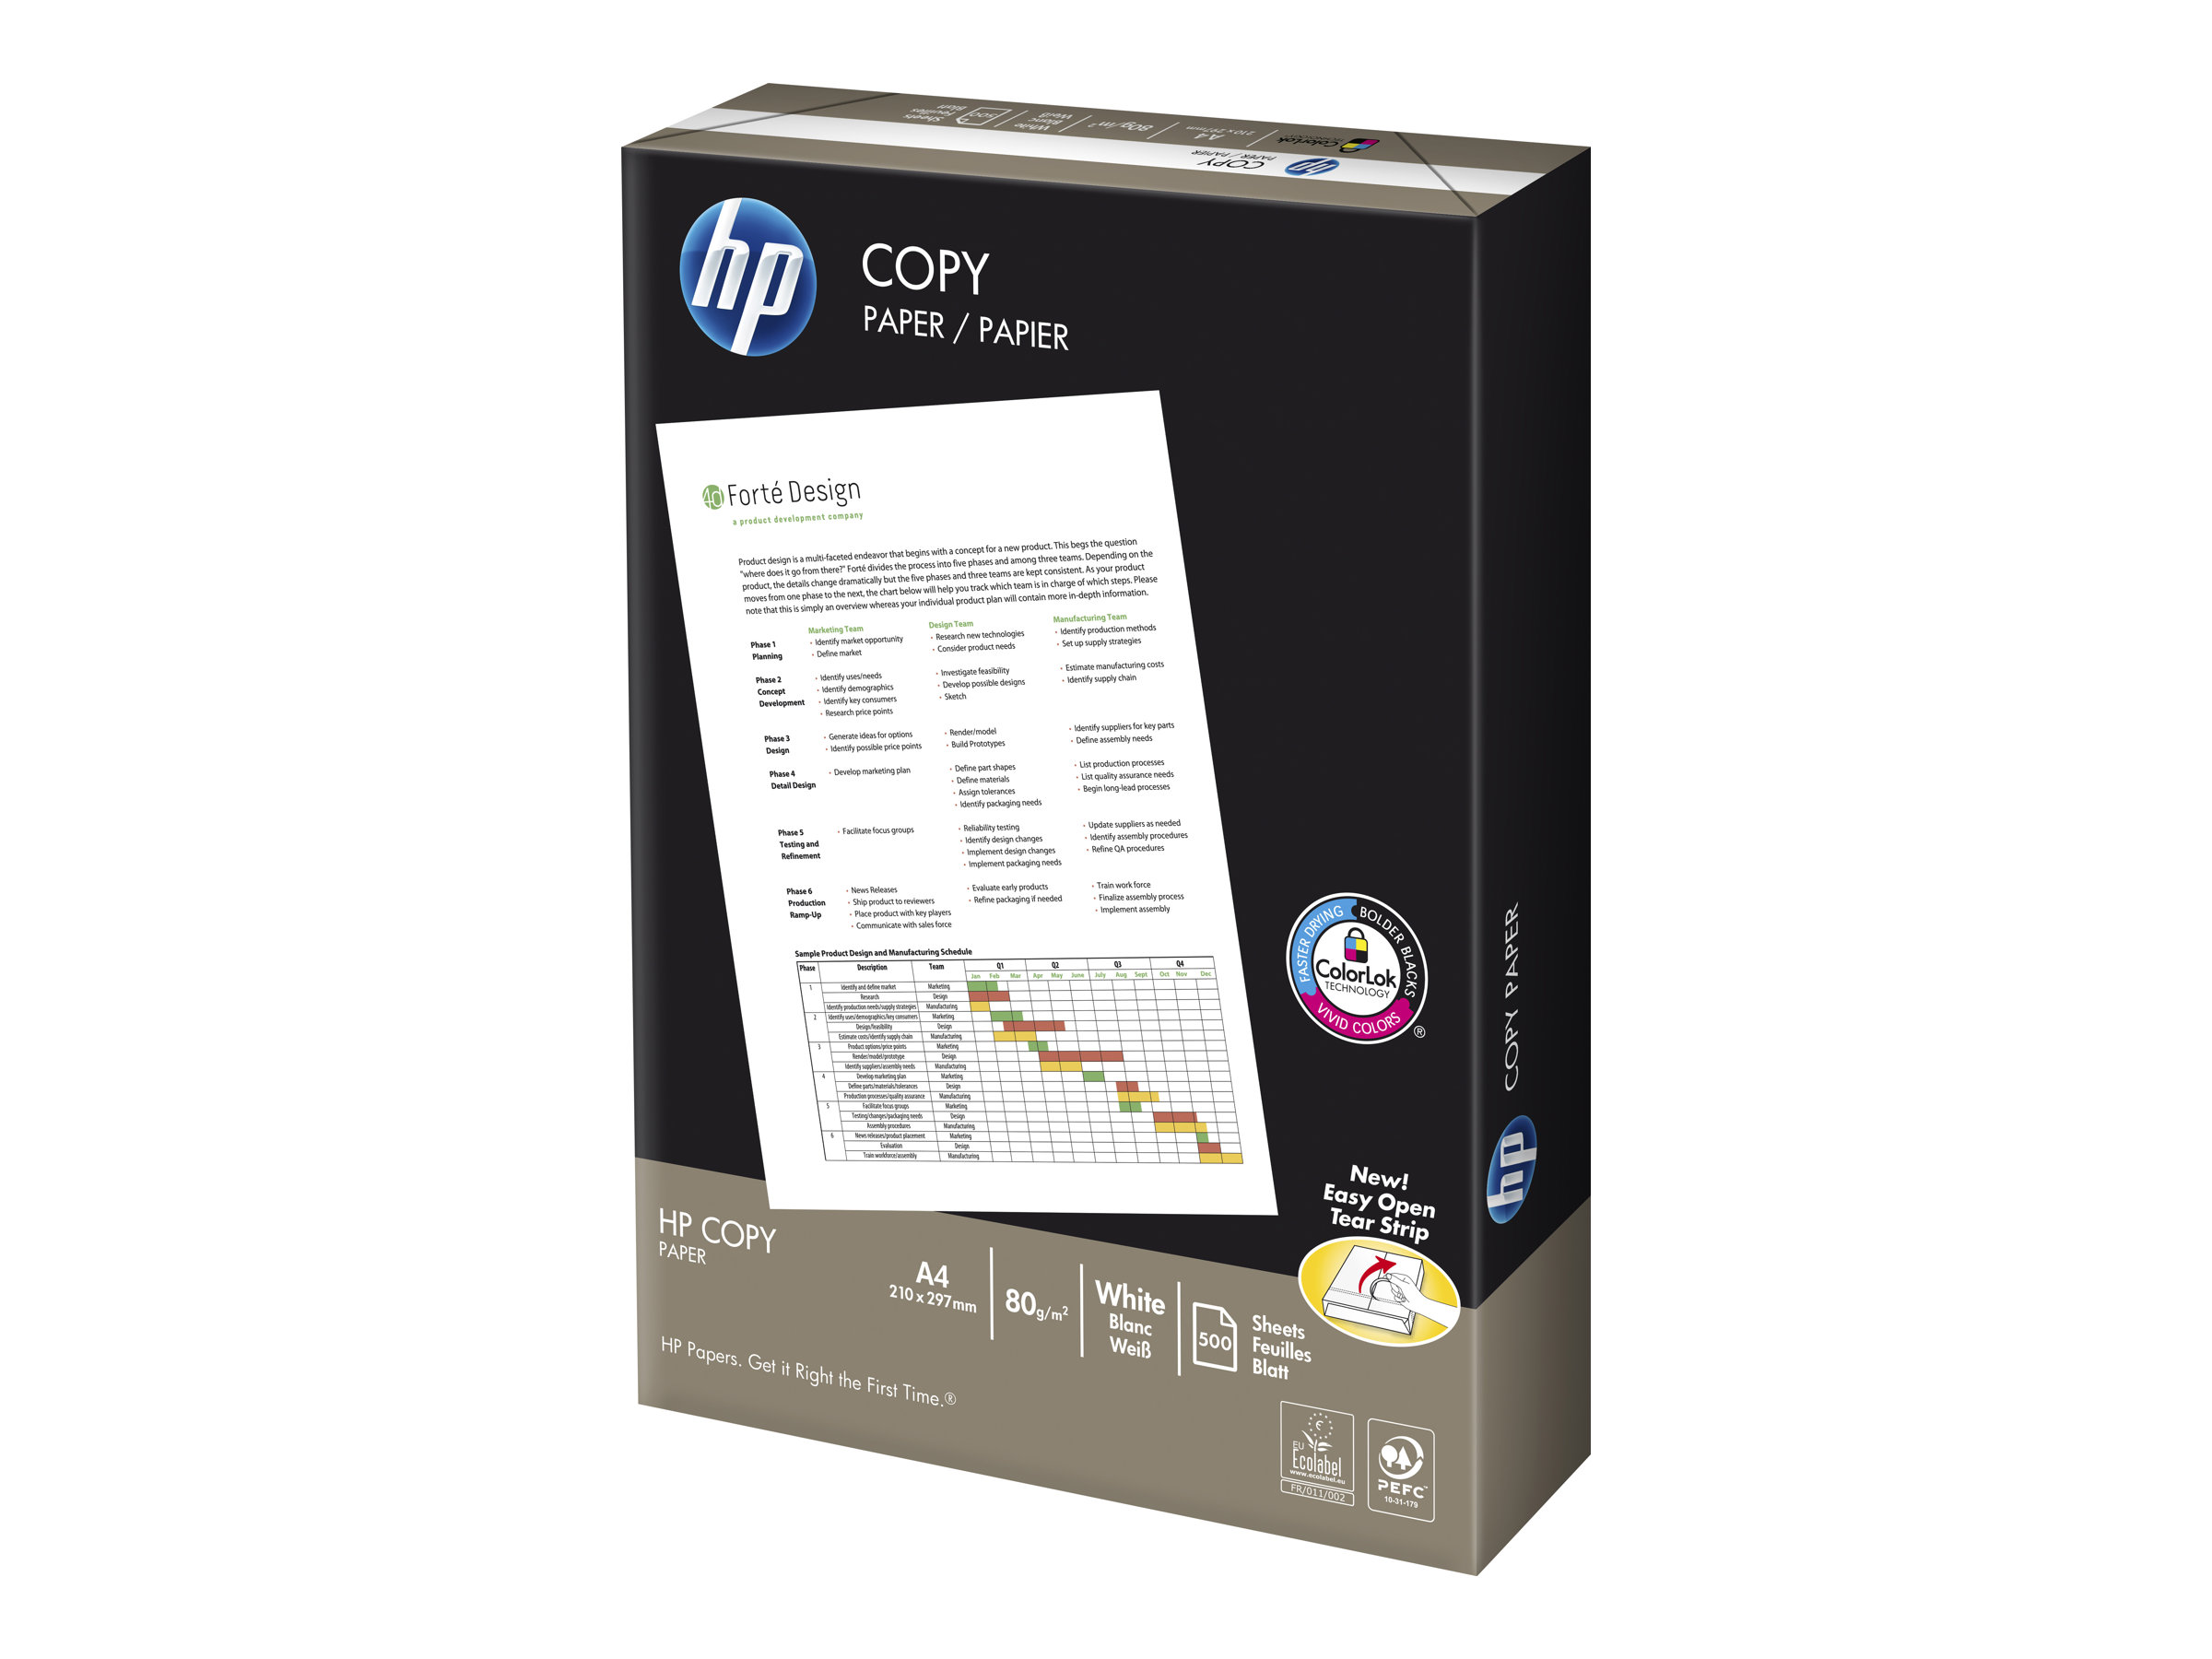 HP Copy Paper - A4 (210 x 297 mm) - 80 g/m² - 500 Stck. Papier